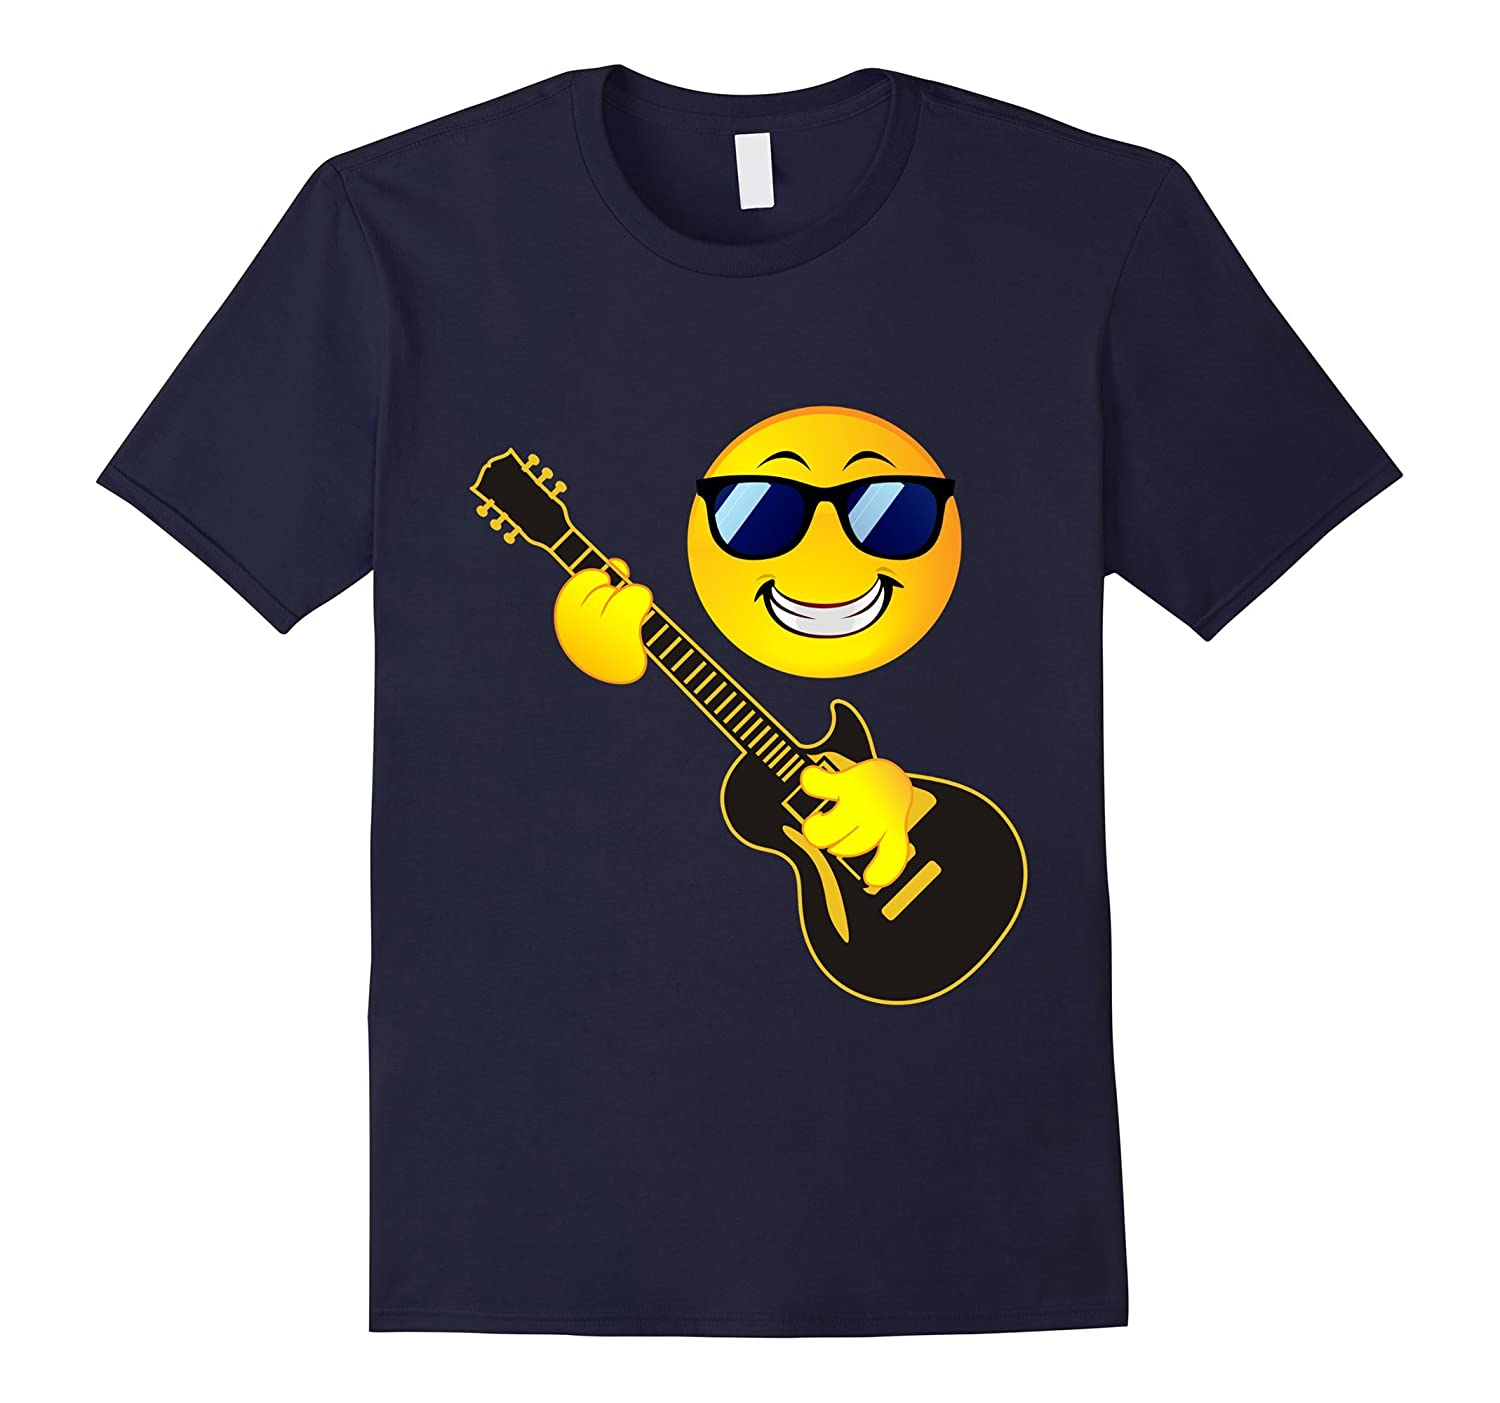 rock music emoji t shirt smiley face guitar sunglasses. Black Bedroom Furniture Sets. Home Design Ideas